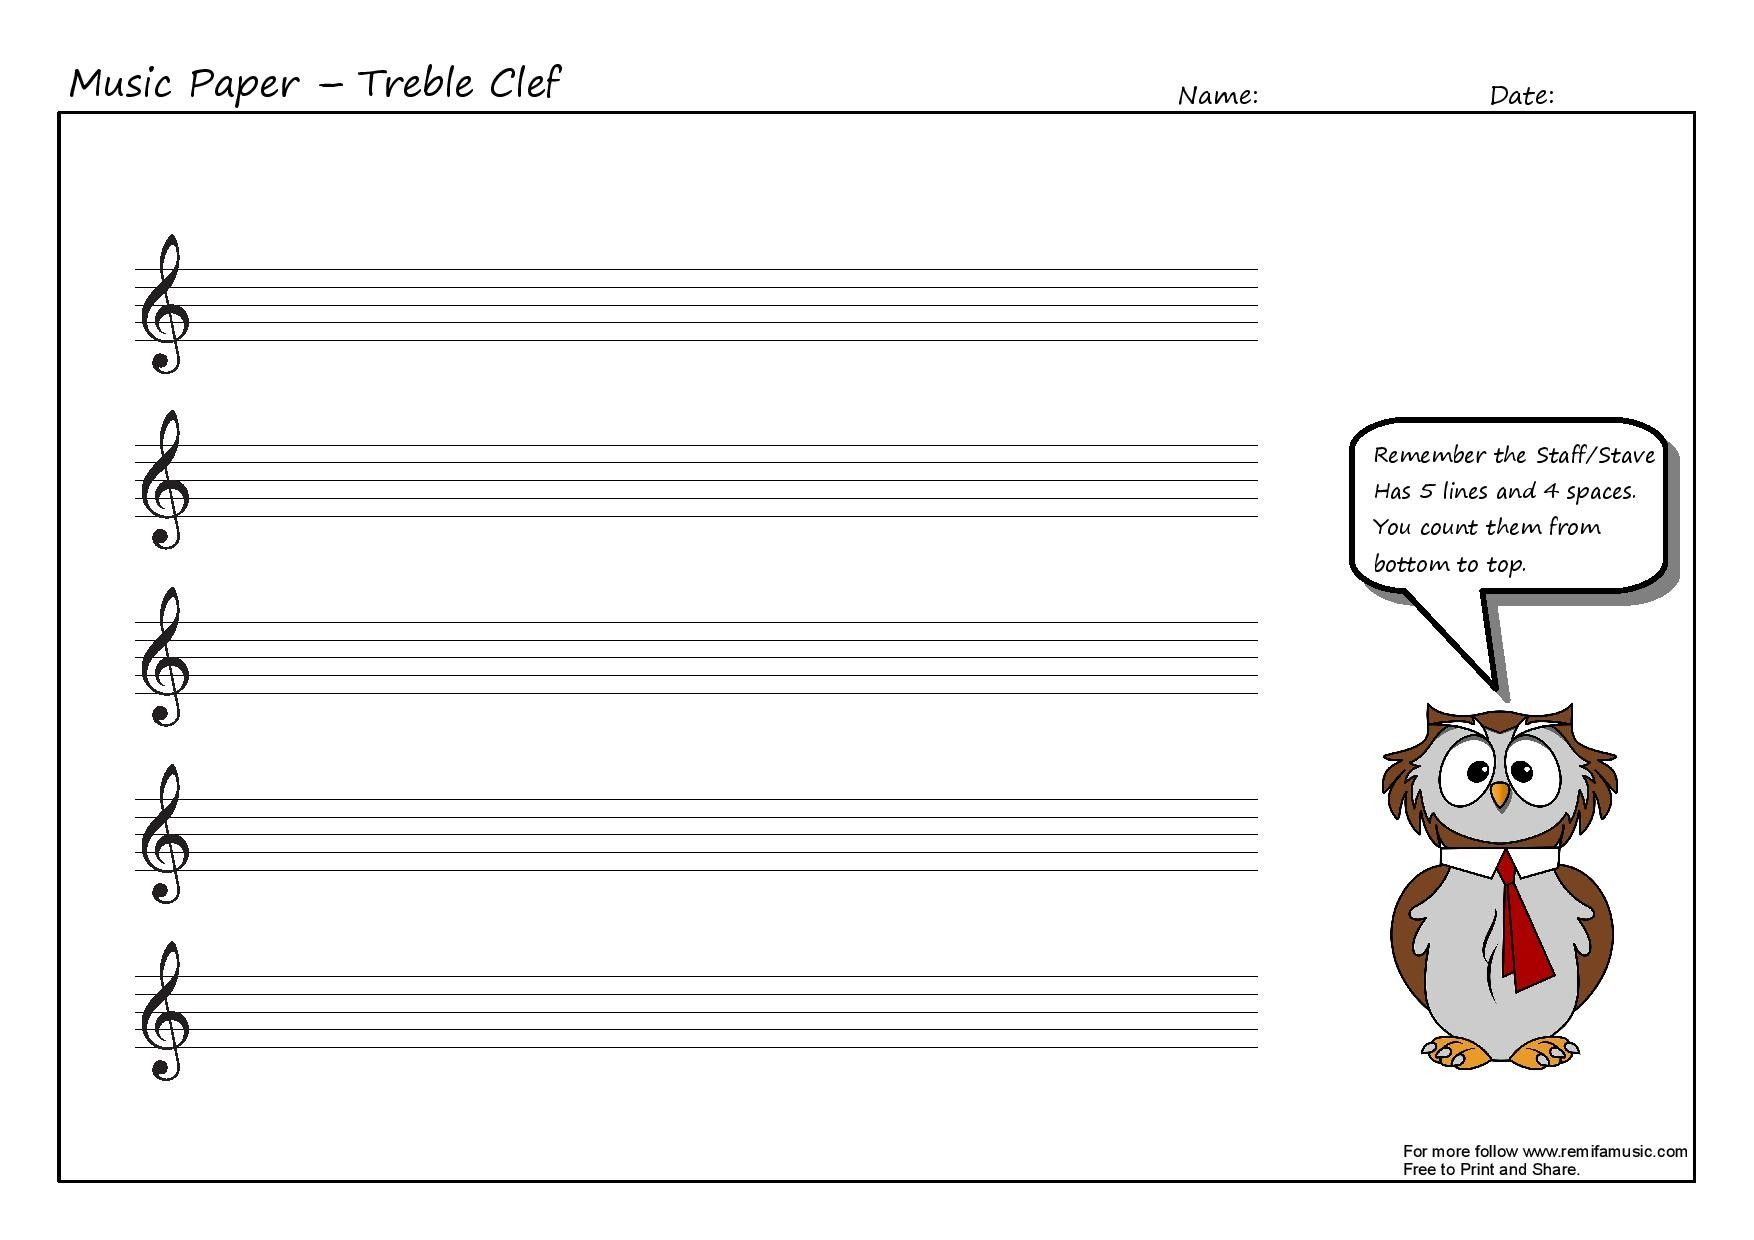 Treble Clef Ledger Lines Worksheet